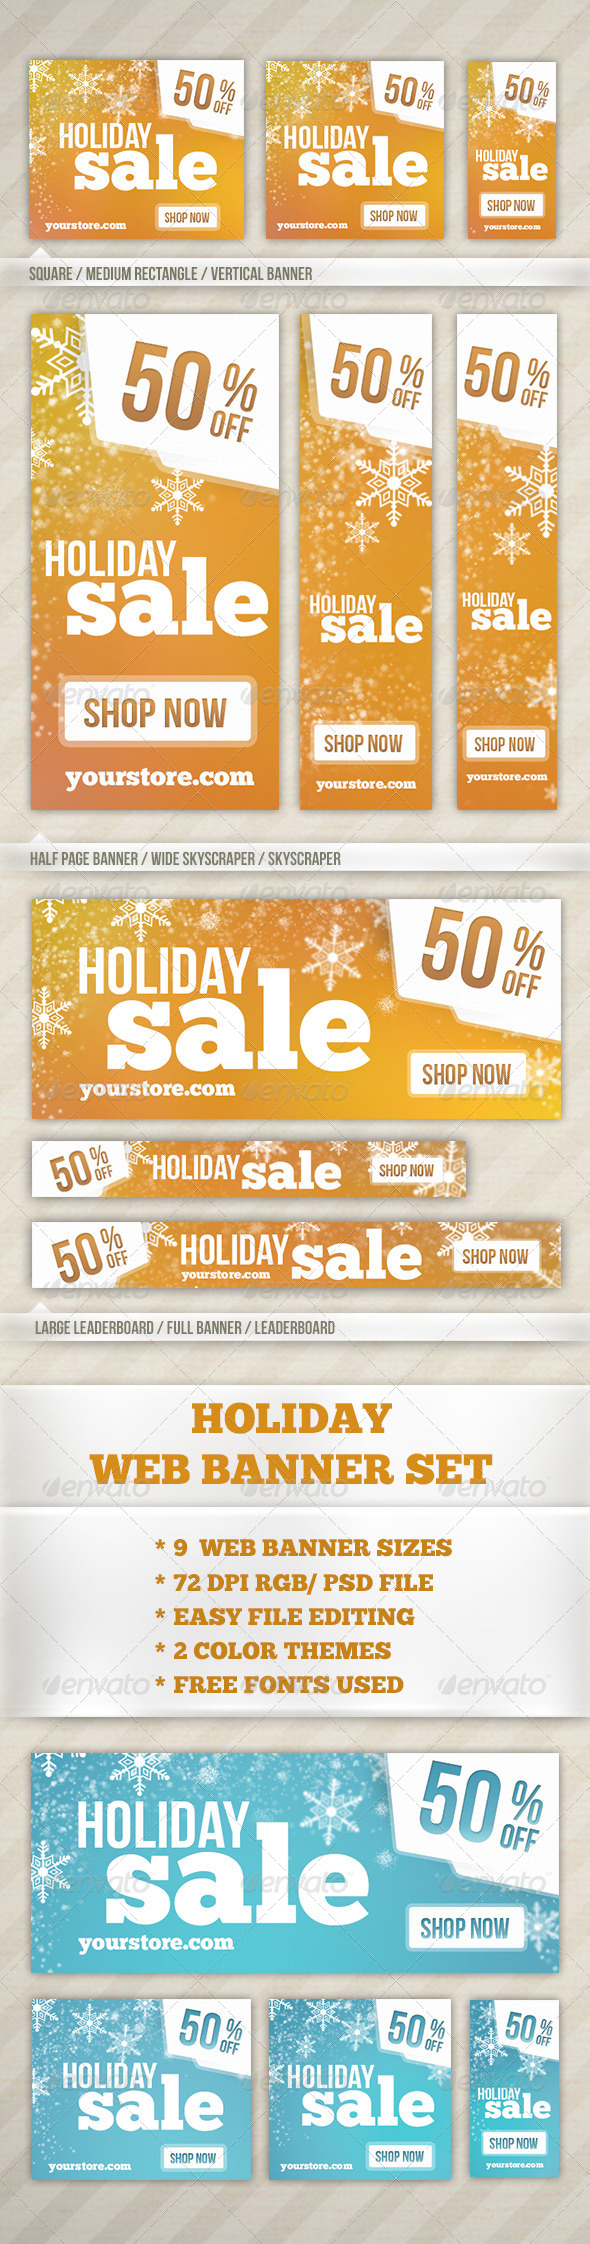 GraphicRiver Holiday Web Banner 6415090